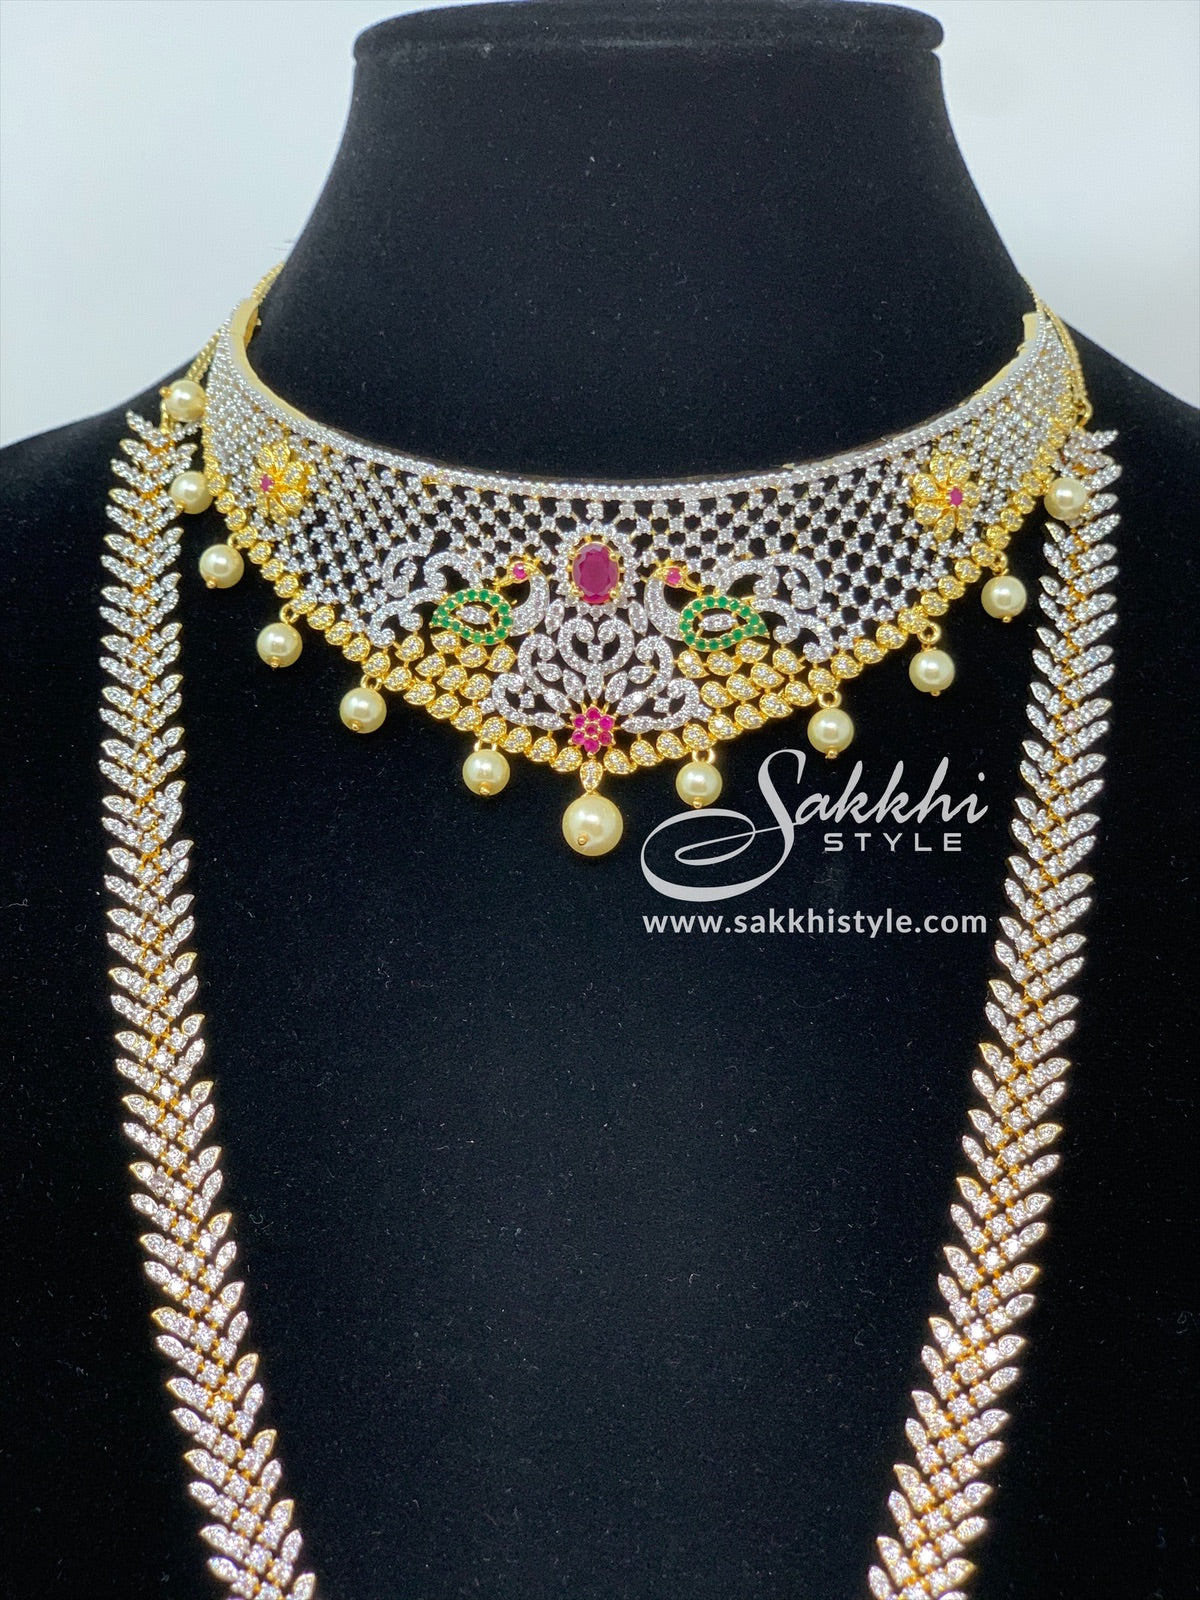 CZ Stones Choker and Necklace Bridal Set